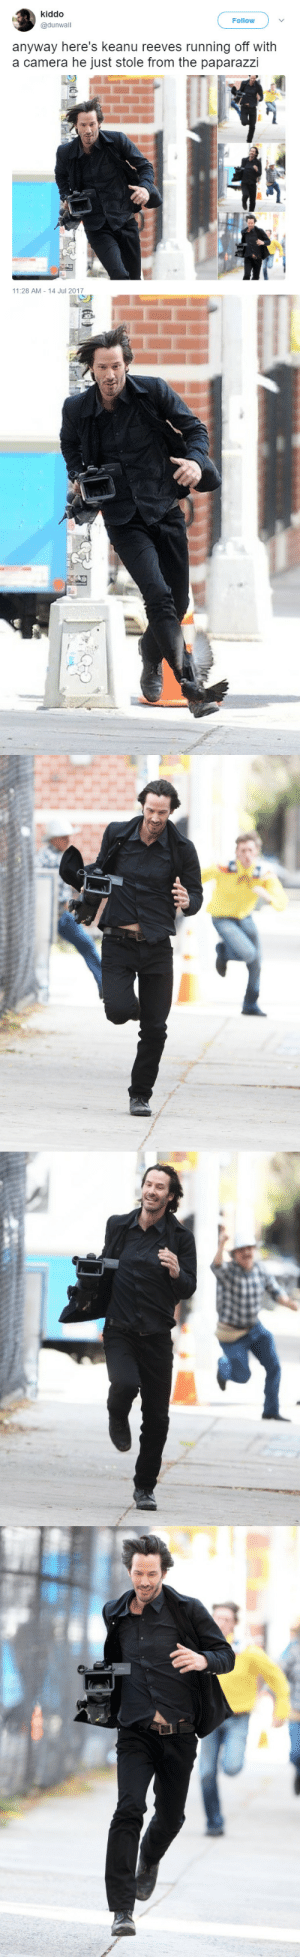 Apparently, Beautiful, and Tumblr: kiddo  @dunwall  Follow  anyway here's keanu reeves running off with  a camera he just stole from the paparazzi  11:28 AM 14 Jul 2017 youngcoral:  thenatsdorf:Keanu Thieves (via mushroombirdornaments) So these are apparently from a movie. Found an article about it here.Regardless, his smiles are beautiful in these pictures. 3